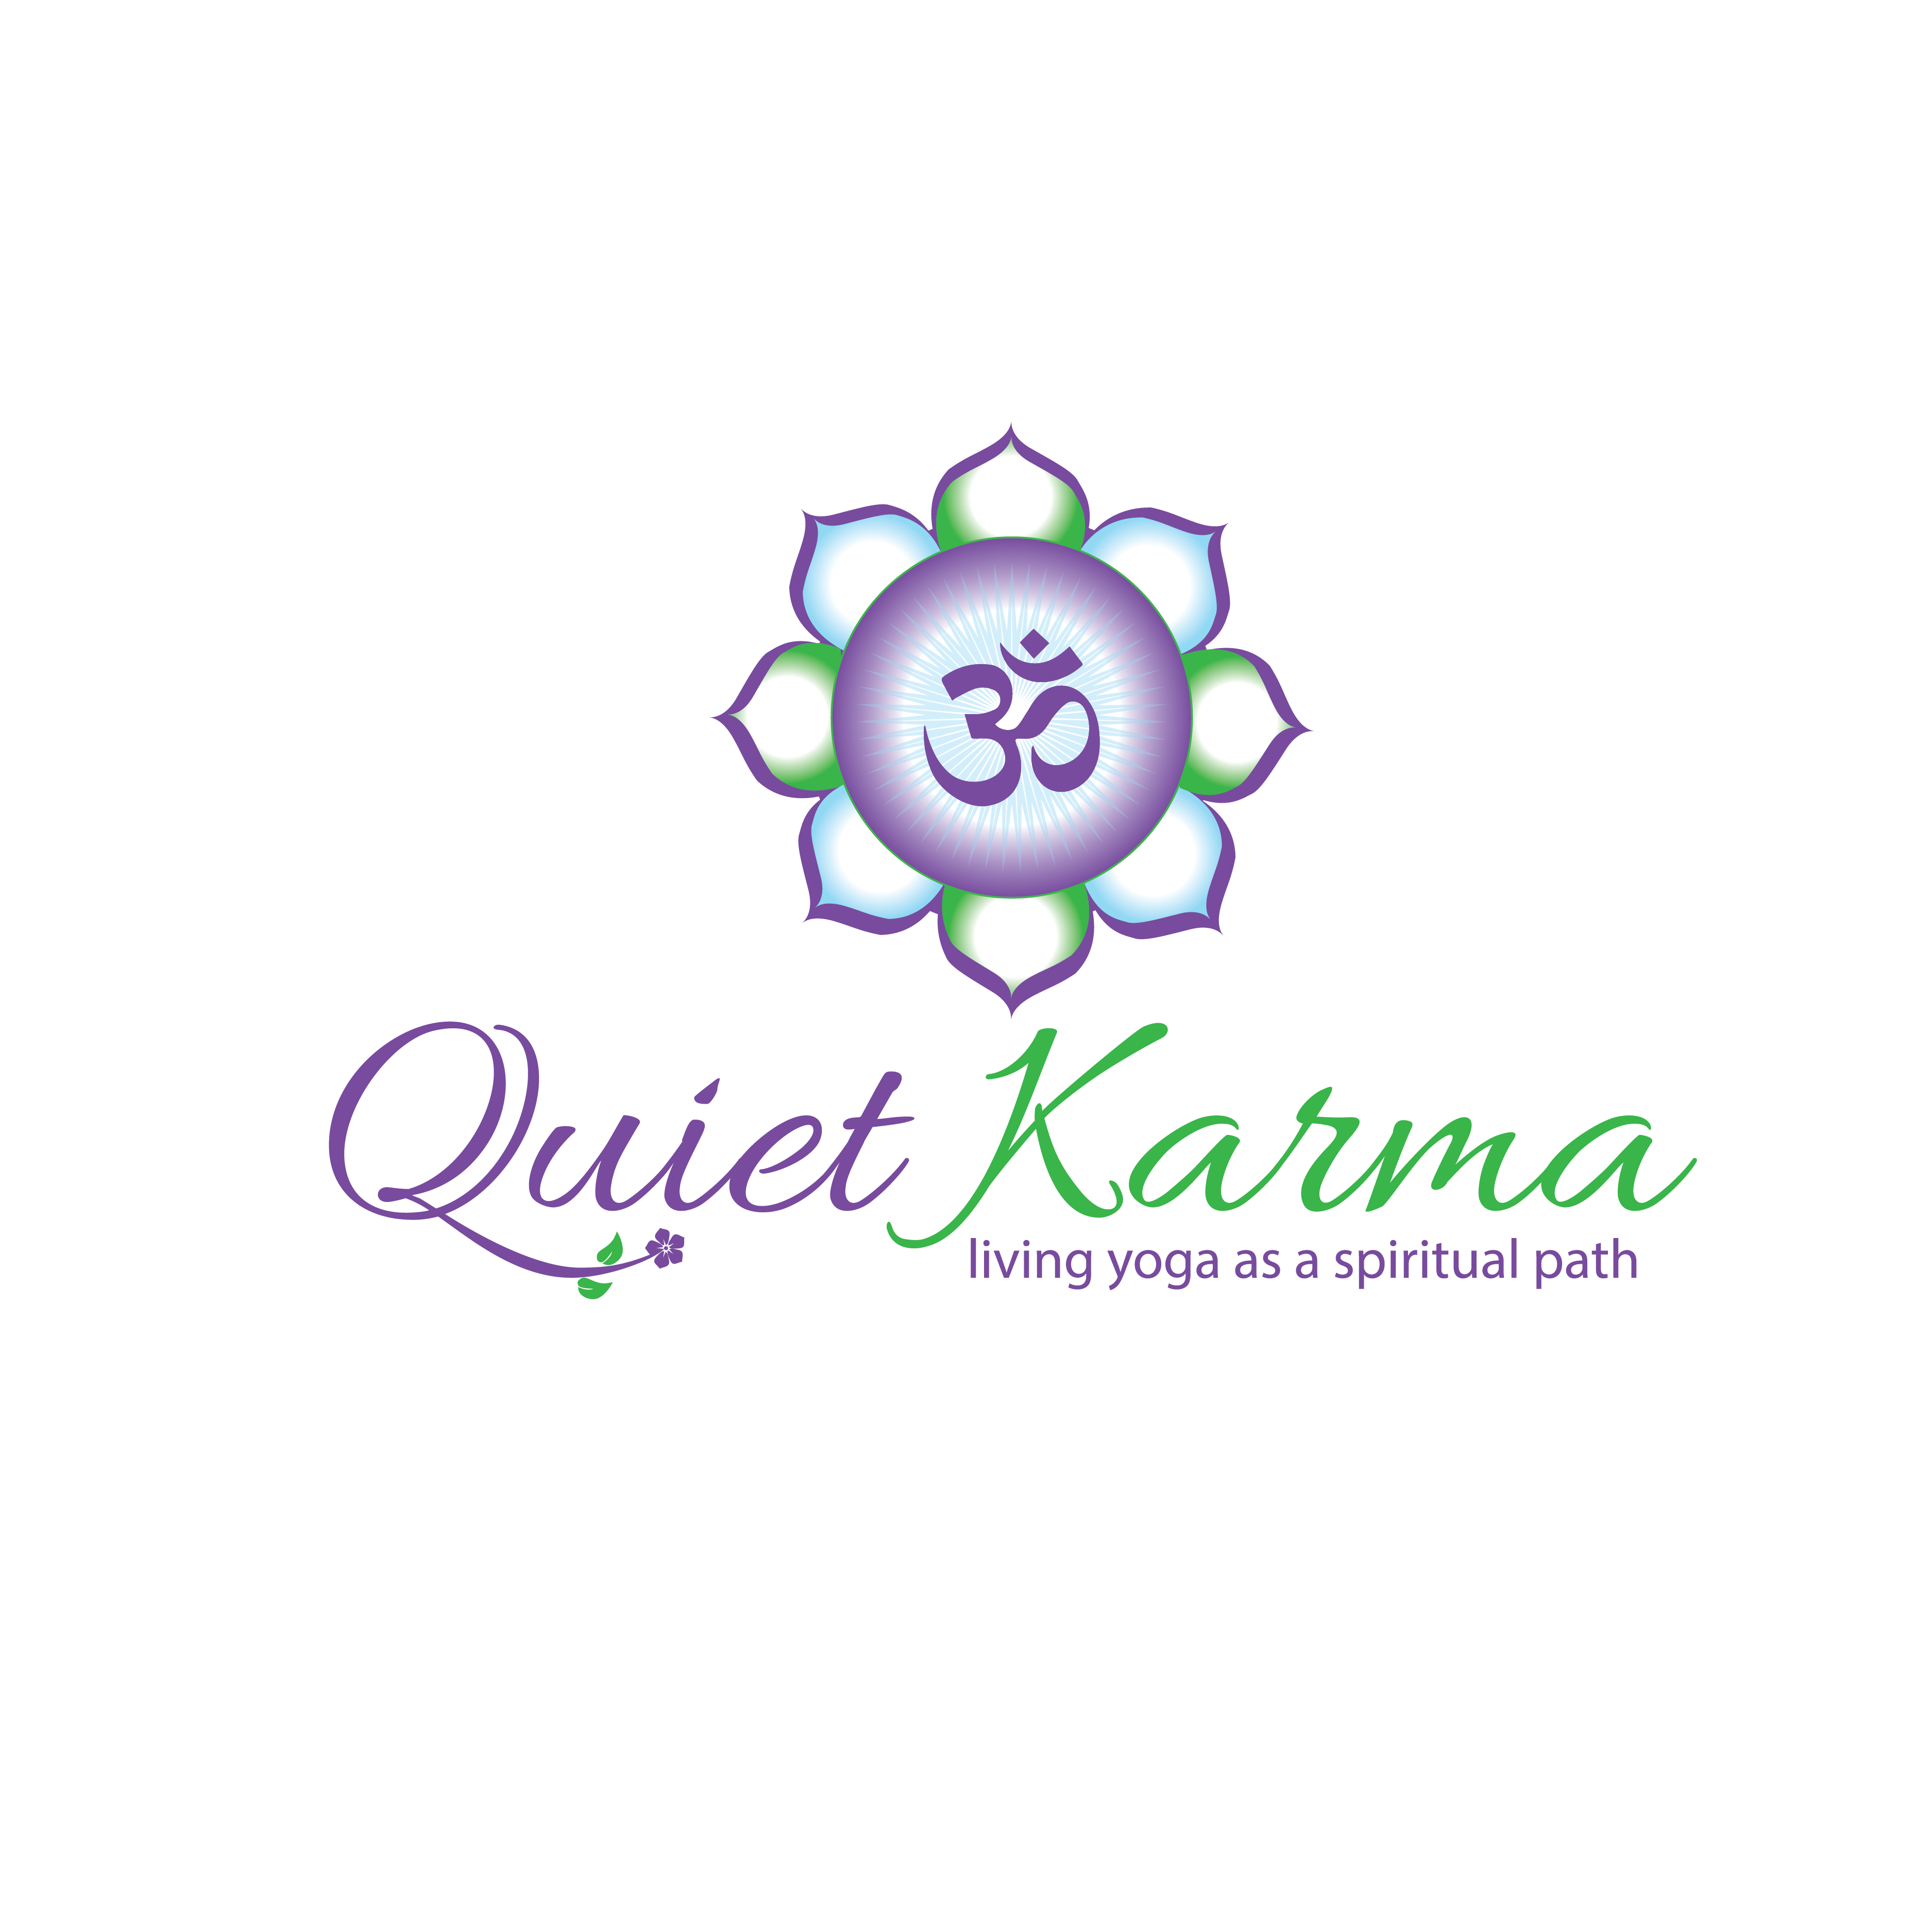 Create an inviting and interesting logo to attract people interested in yoga as a spiritual path